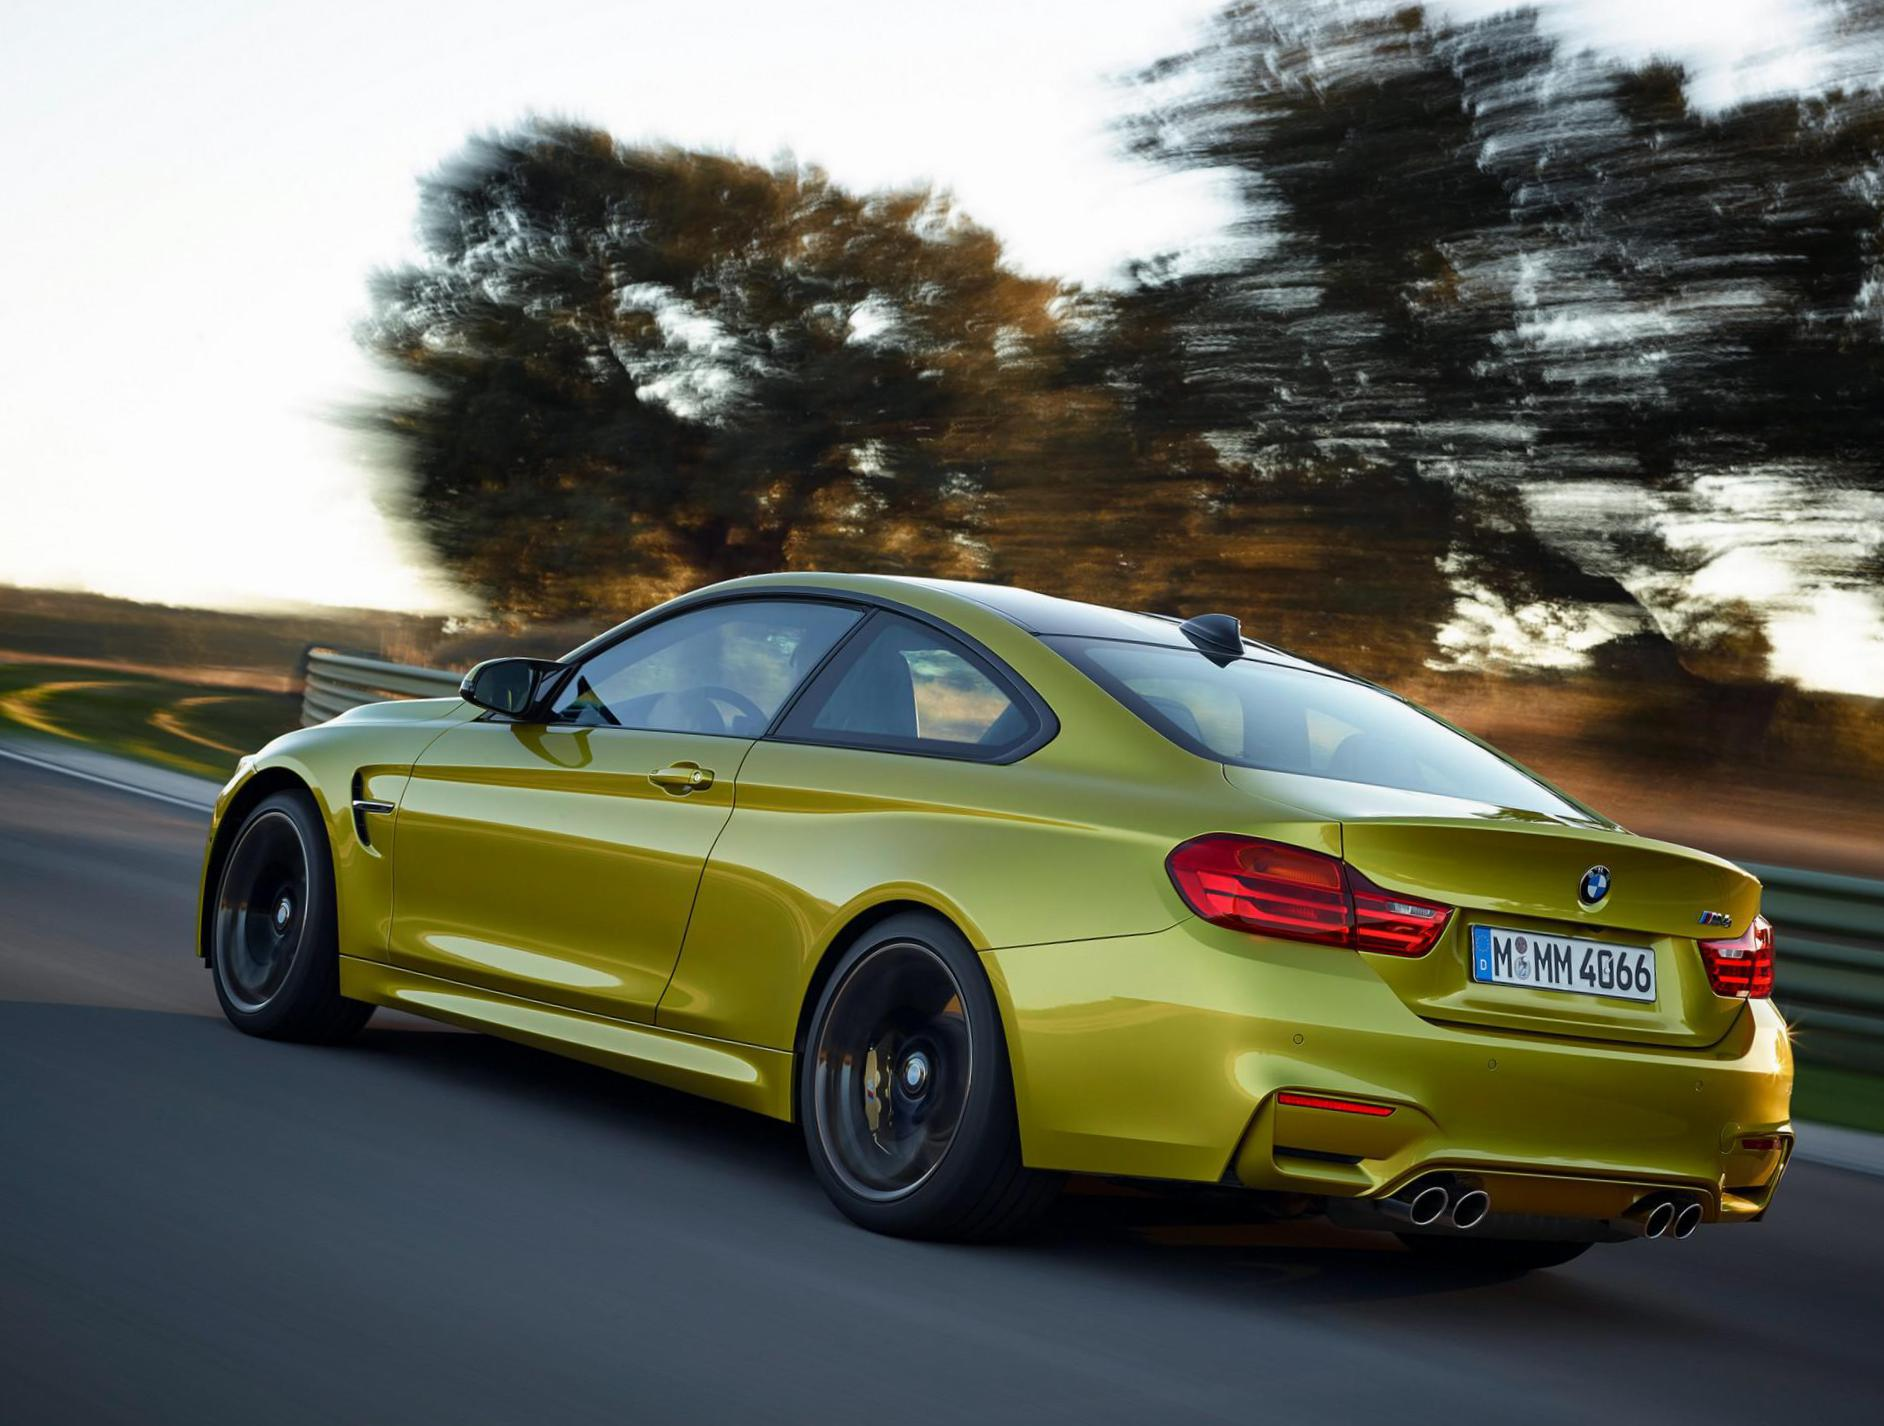 BMW M4 Coupe (F82) configuration 2006